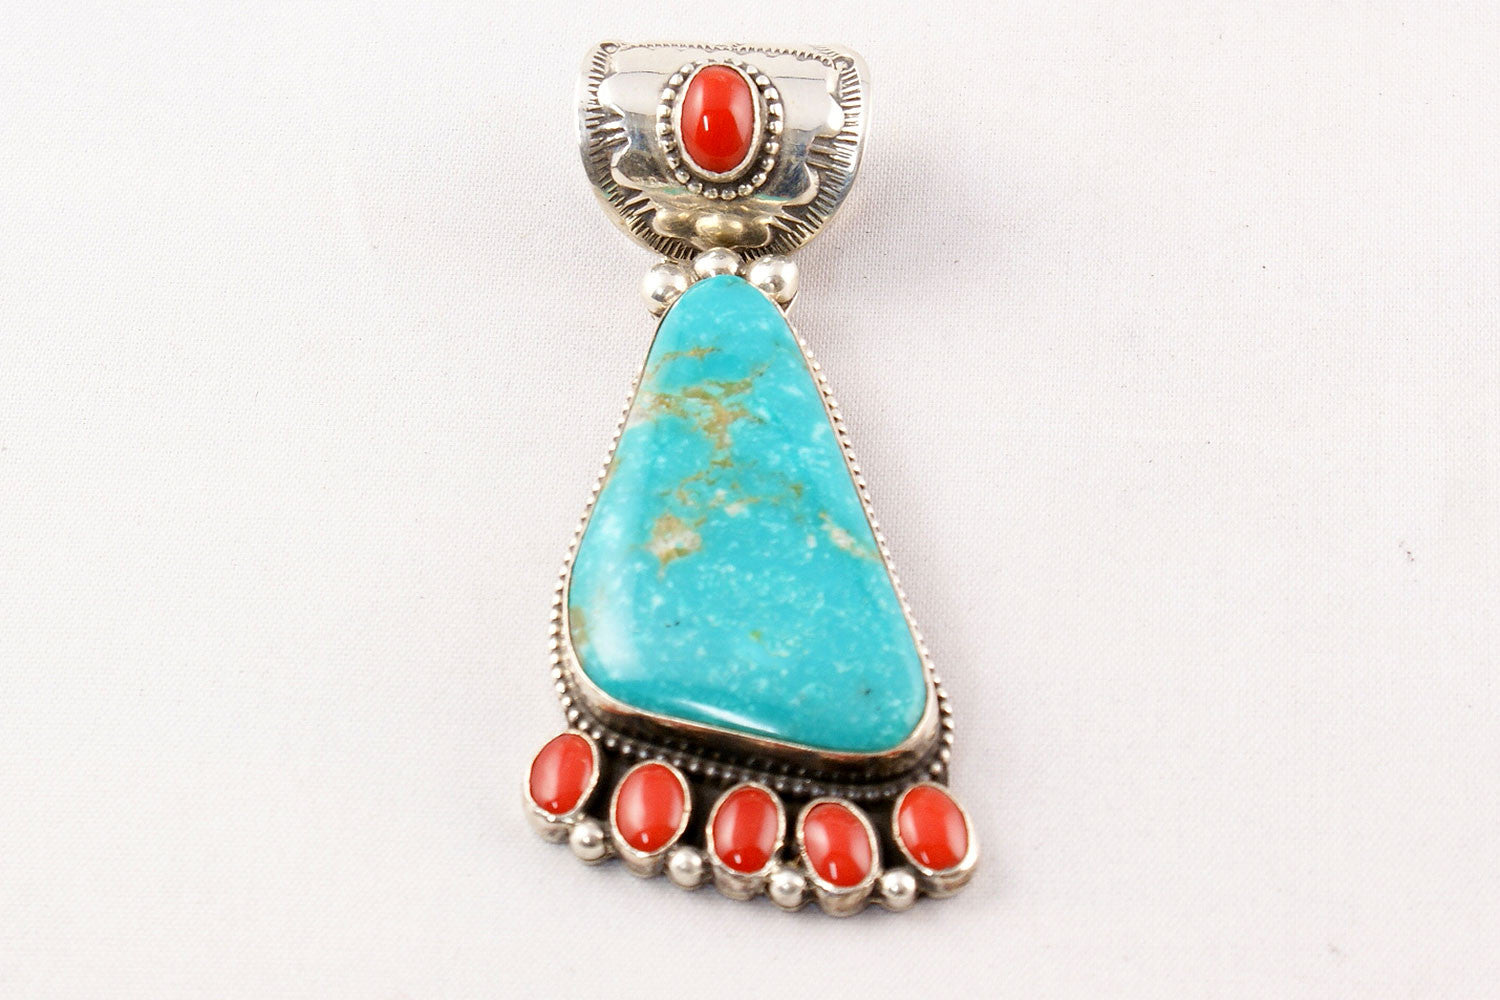 stone be moonga as worn can red pendant coral pendants certified